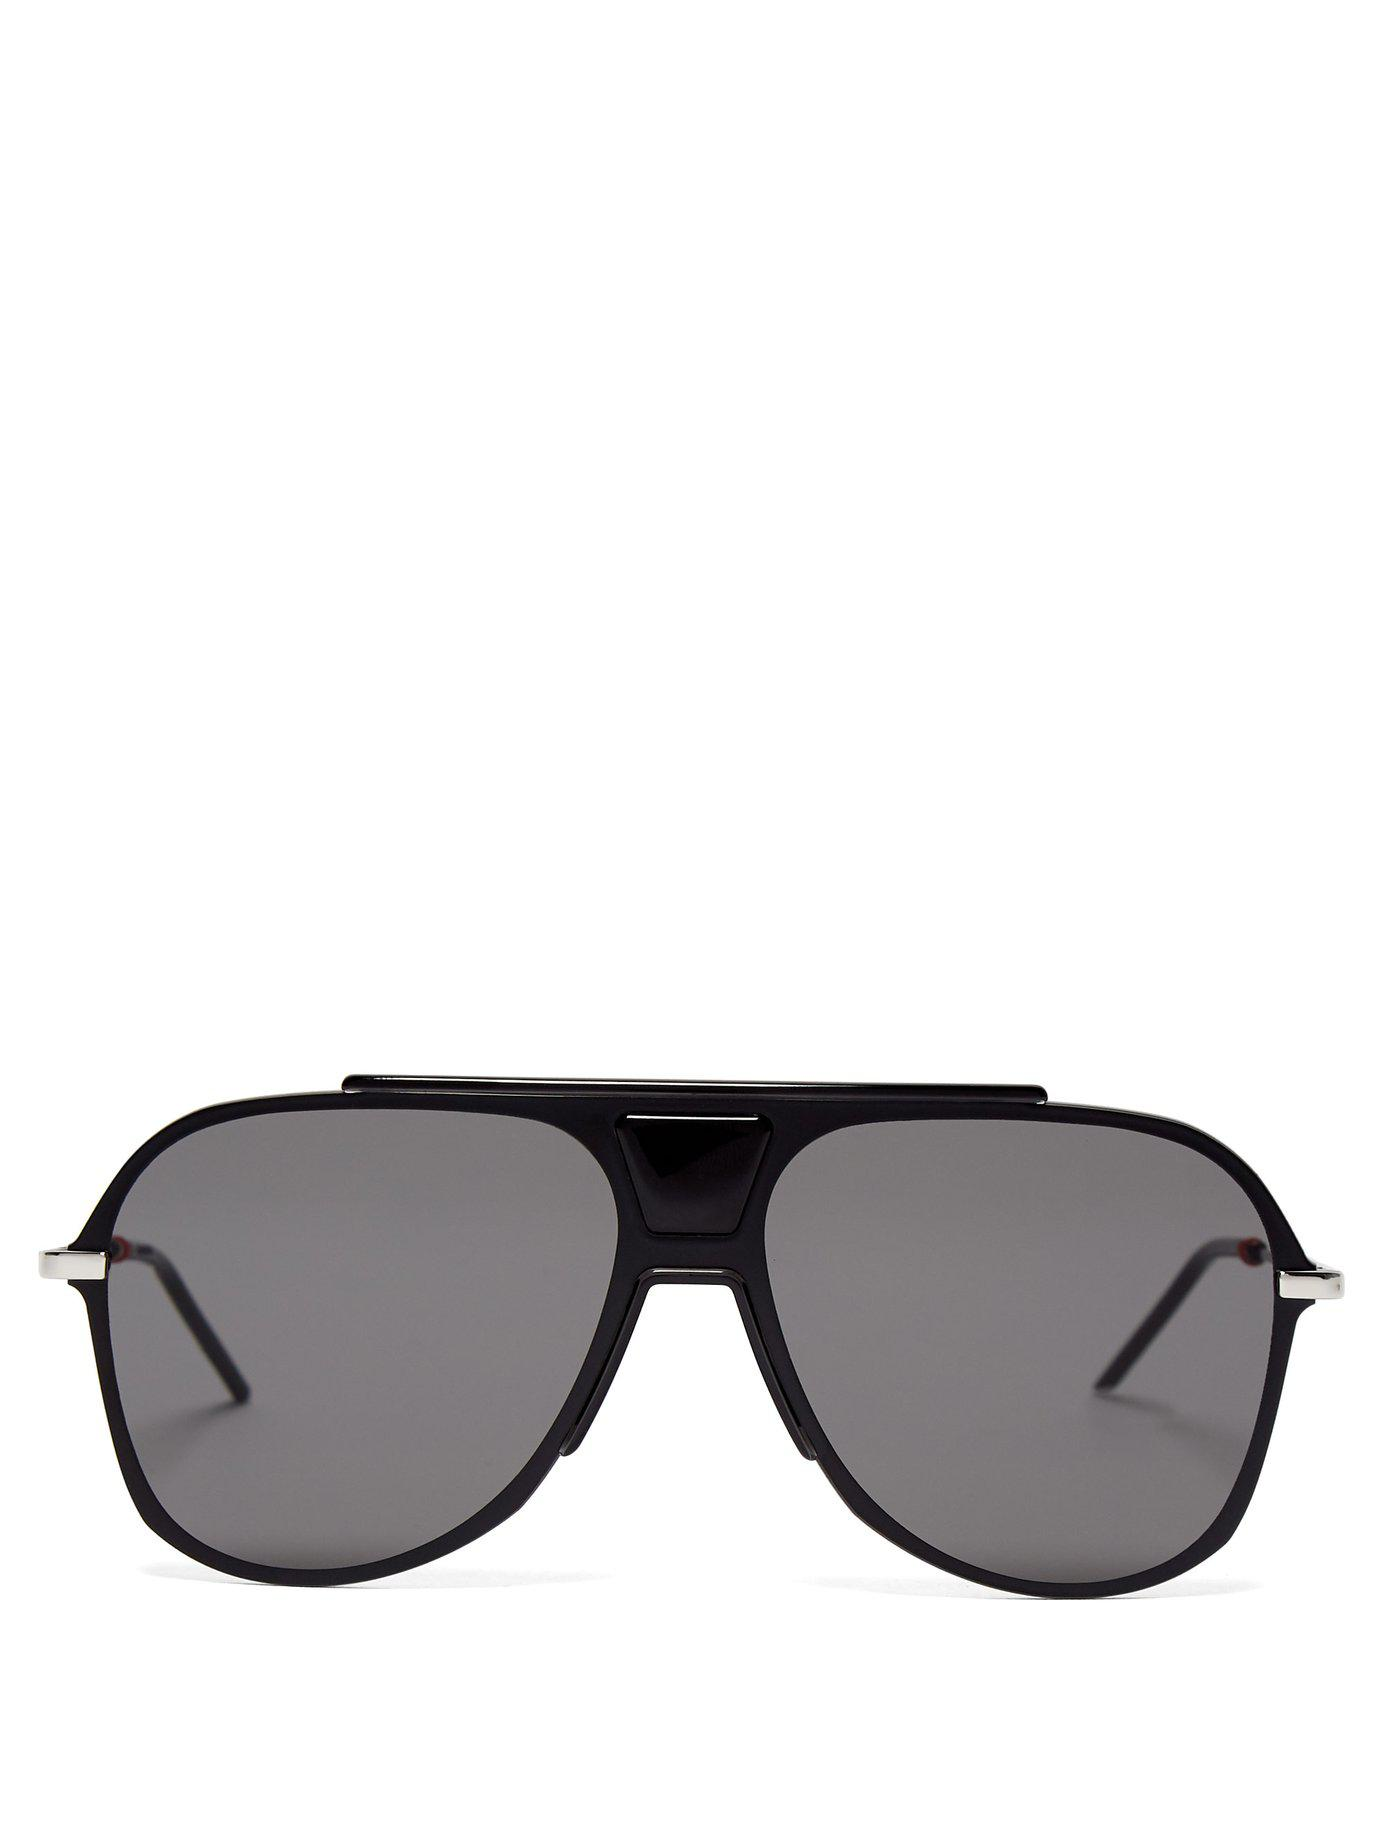 78cd8925a77 Lyst - Dior Homme Aviator Acetate Sunglasses in Black for Men